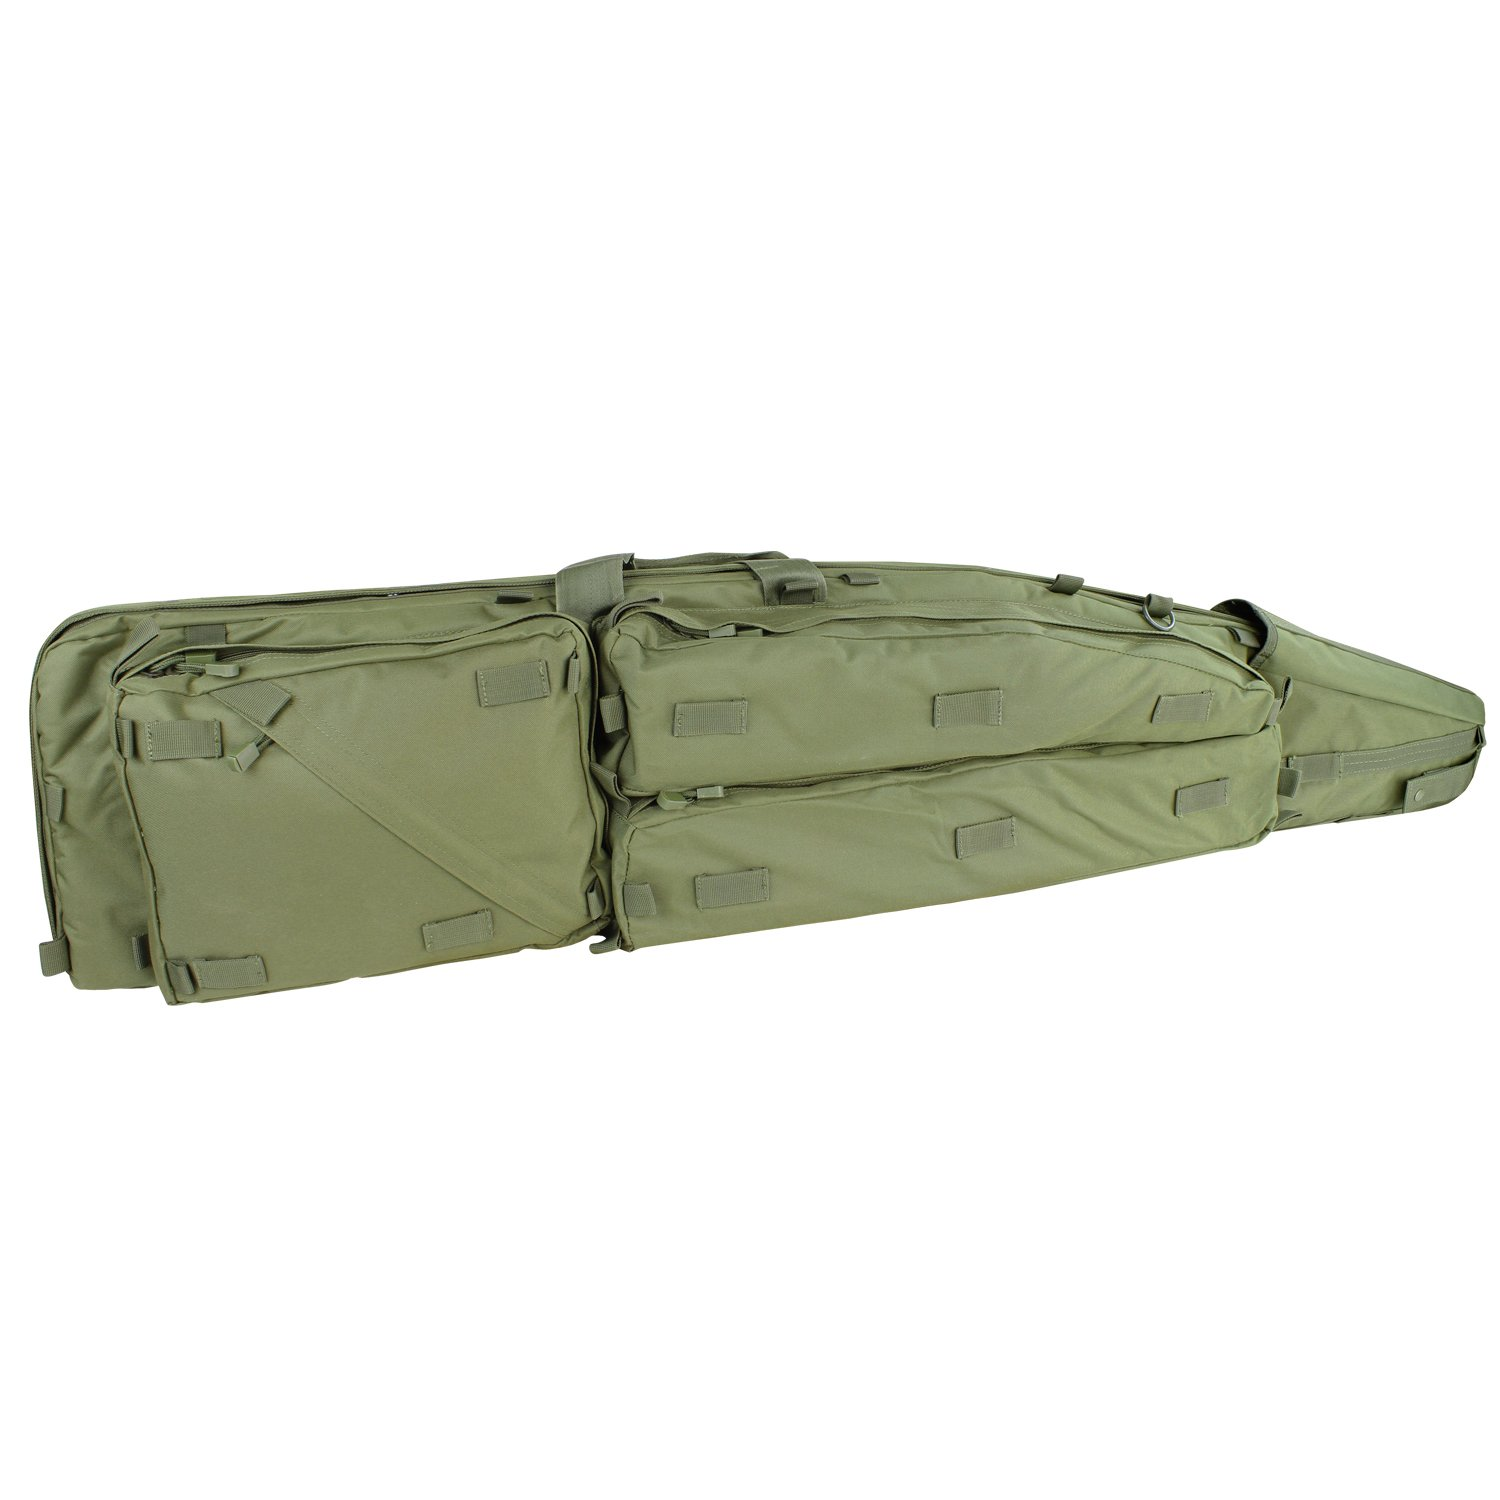 Condor Outdoor 52 Sniper Drag Bag Rifle Case 111107 (Black)